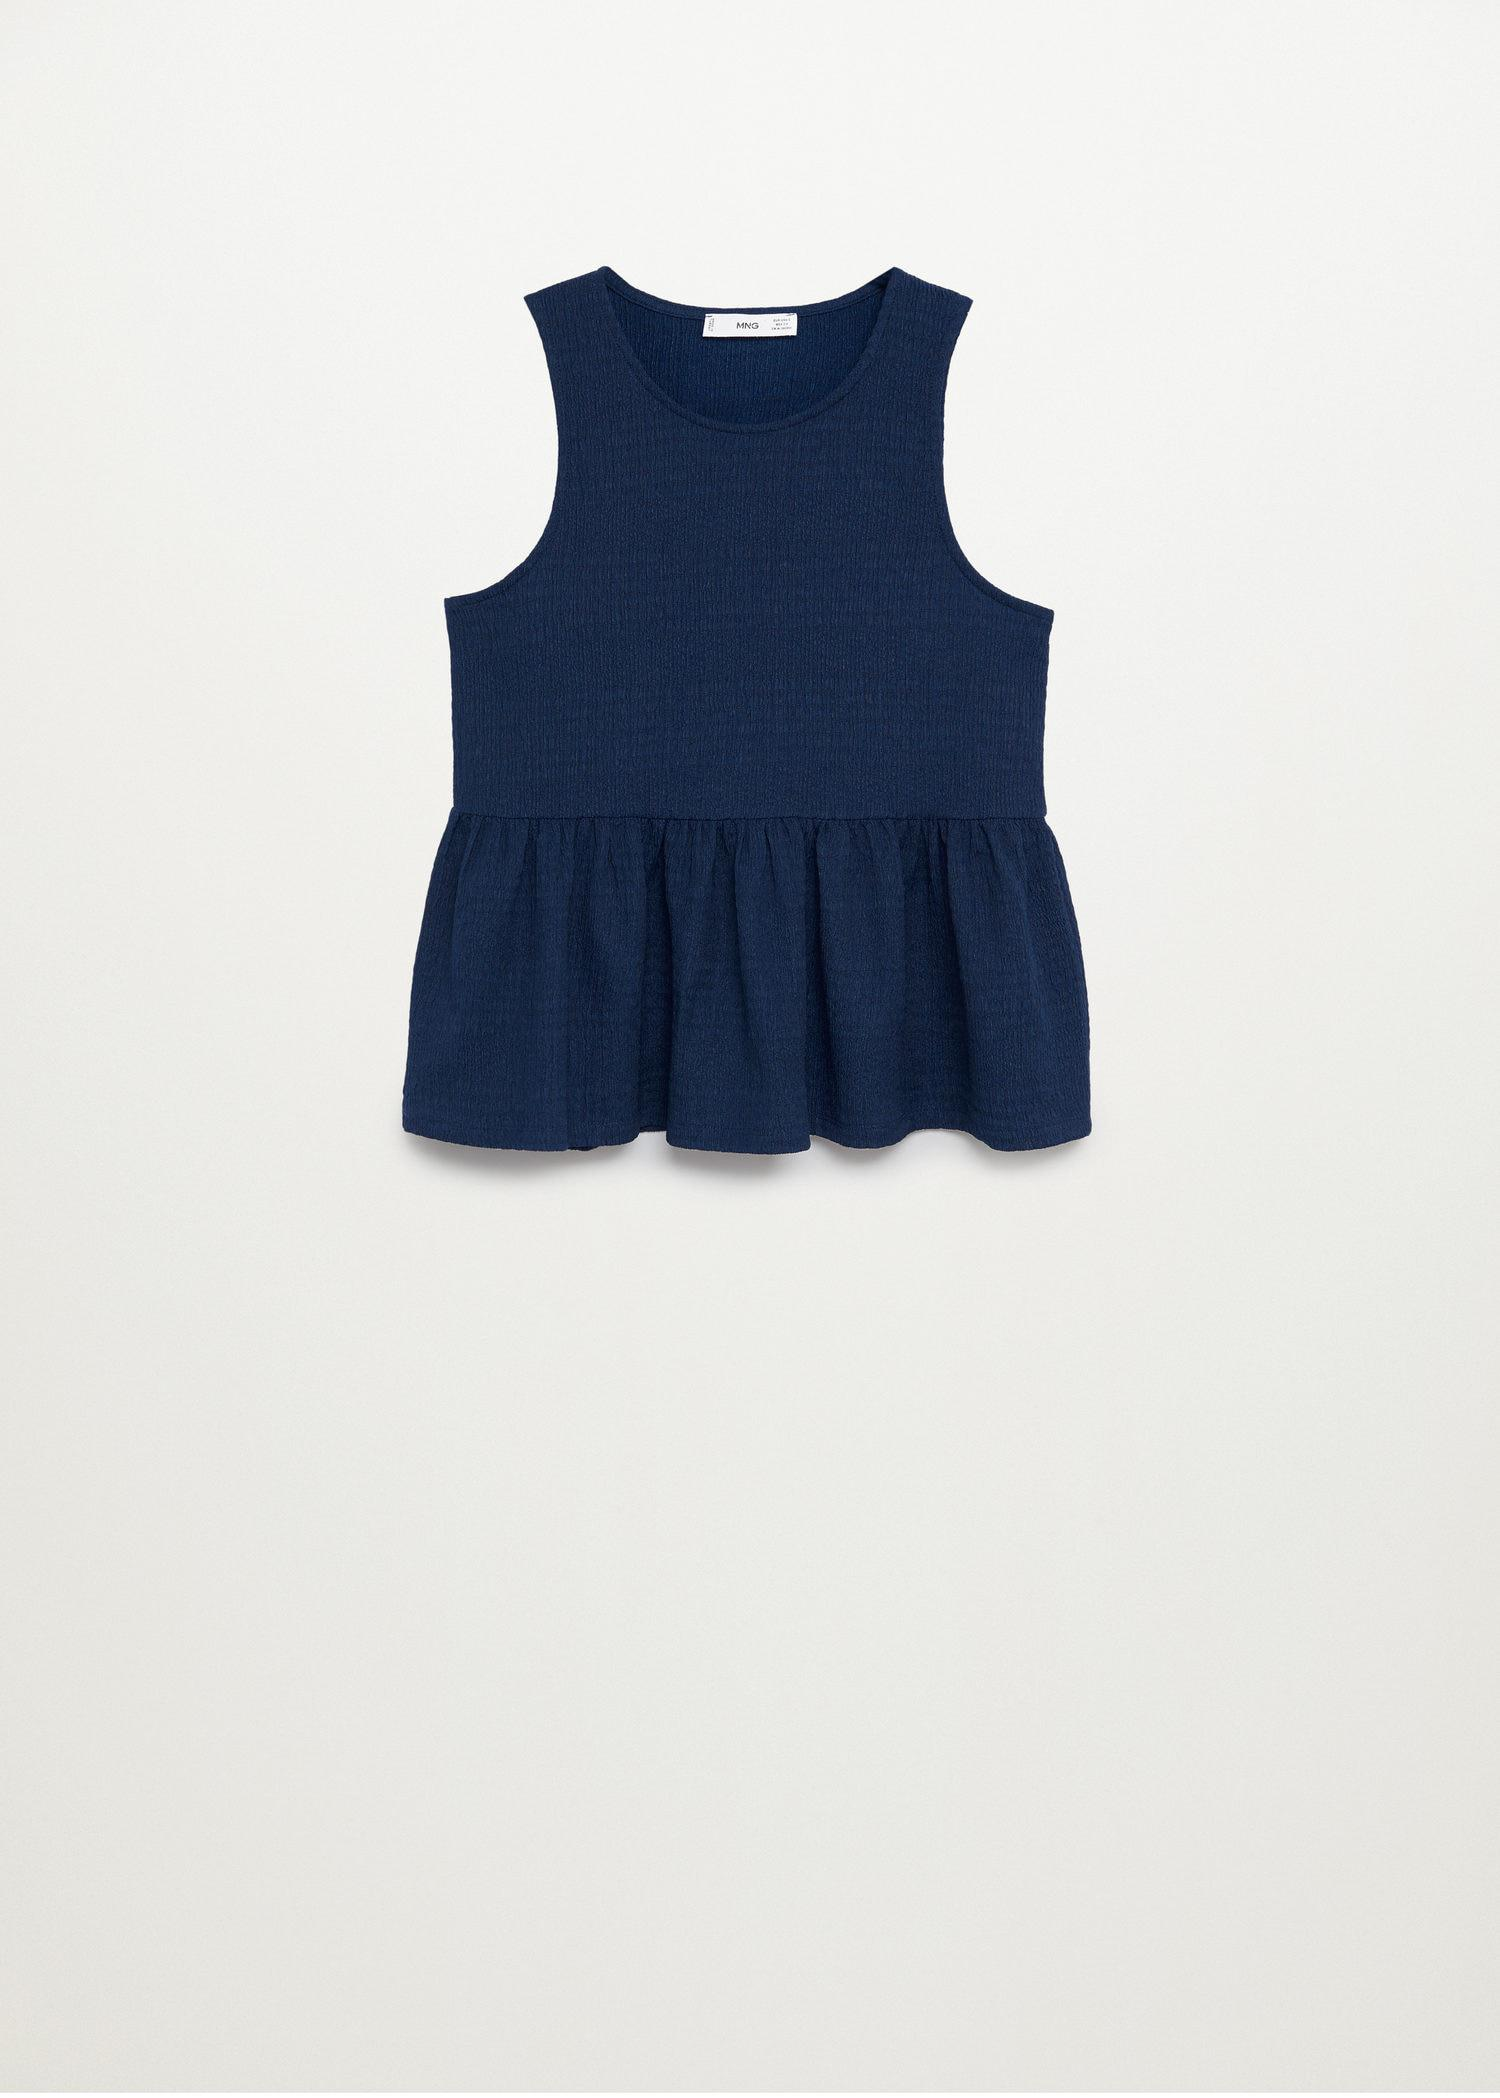 Top with ruffle texture 6